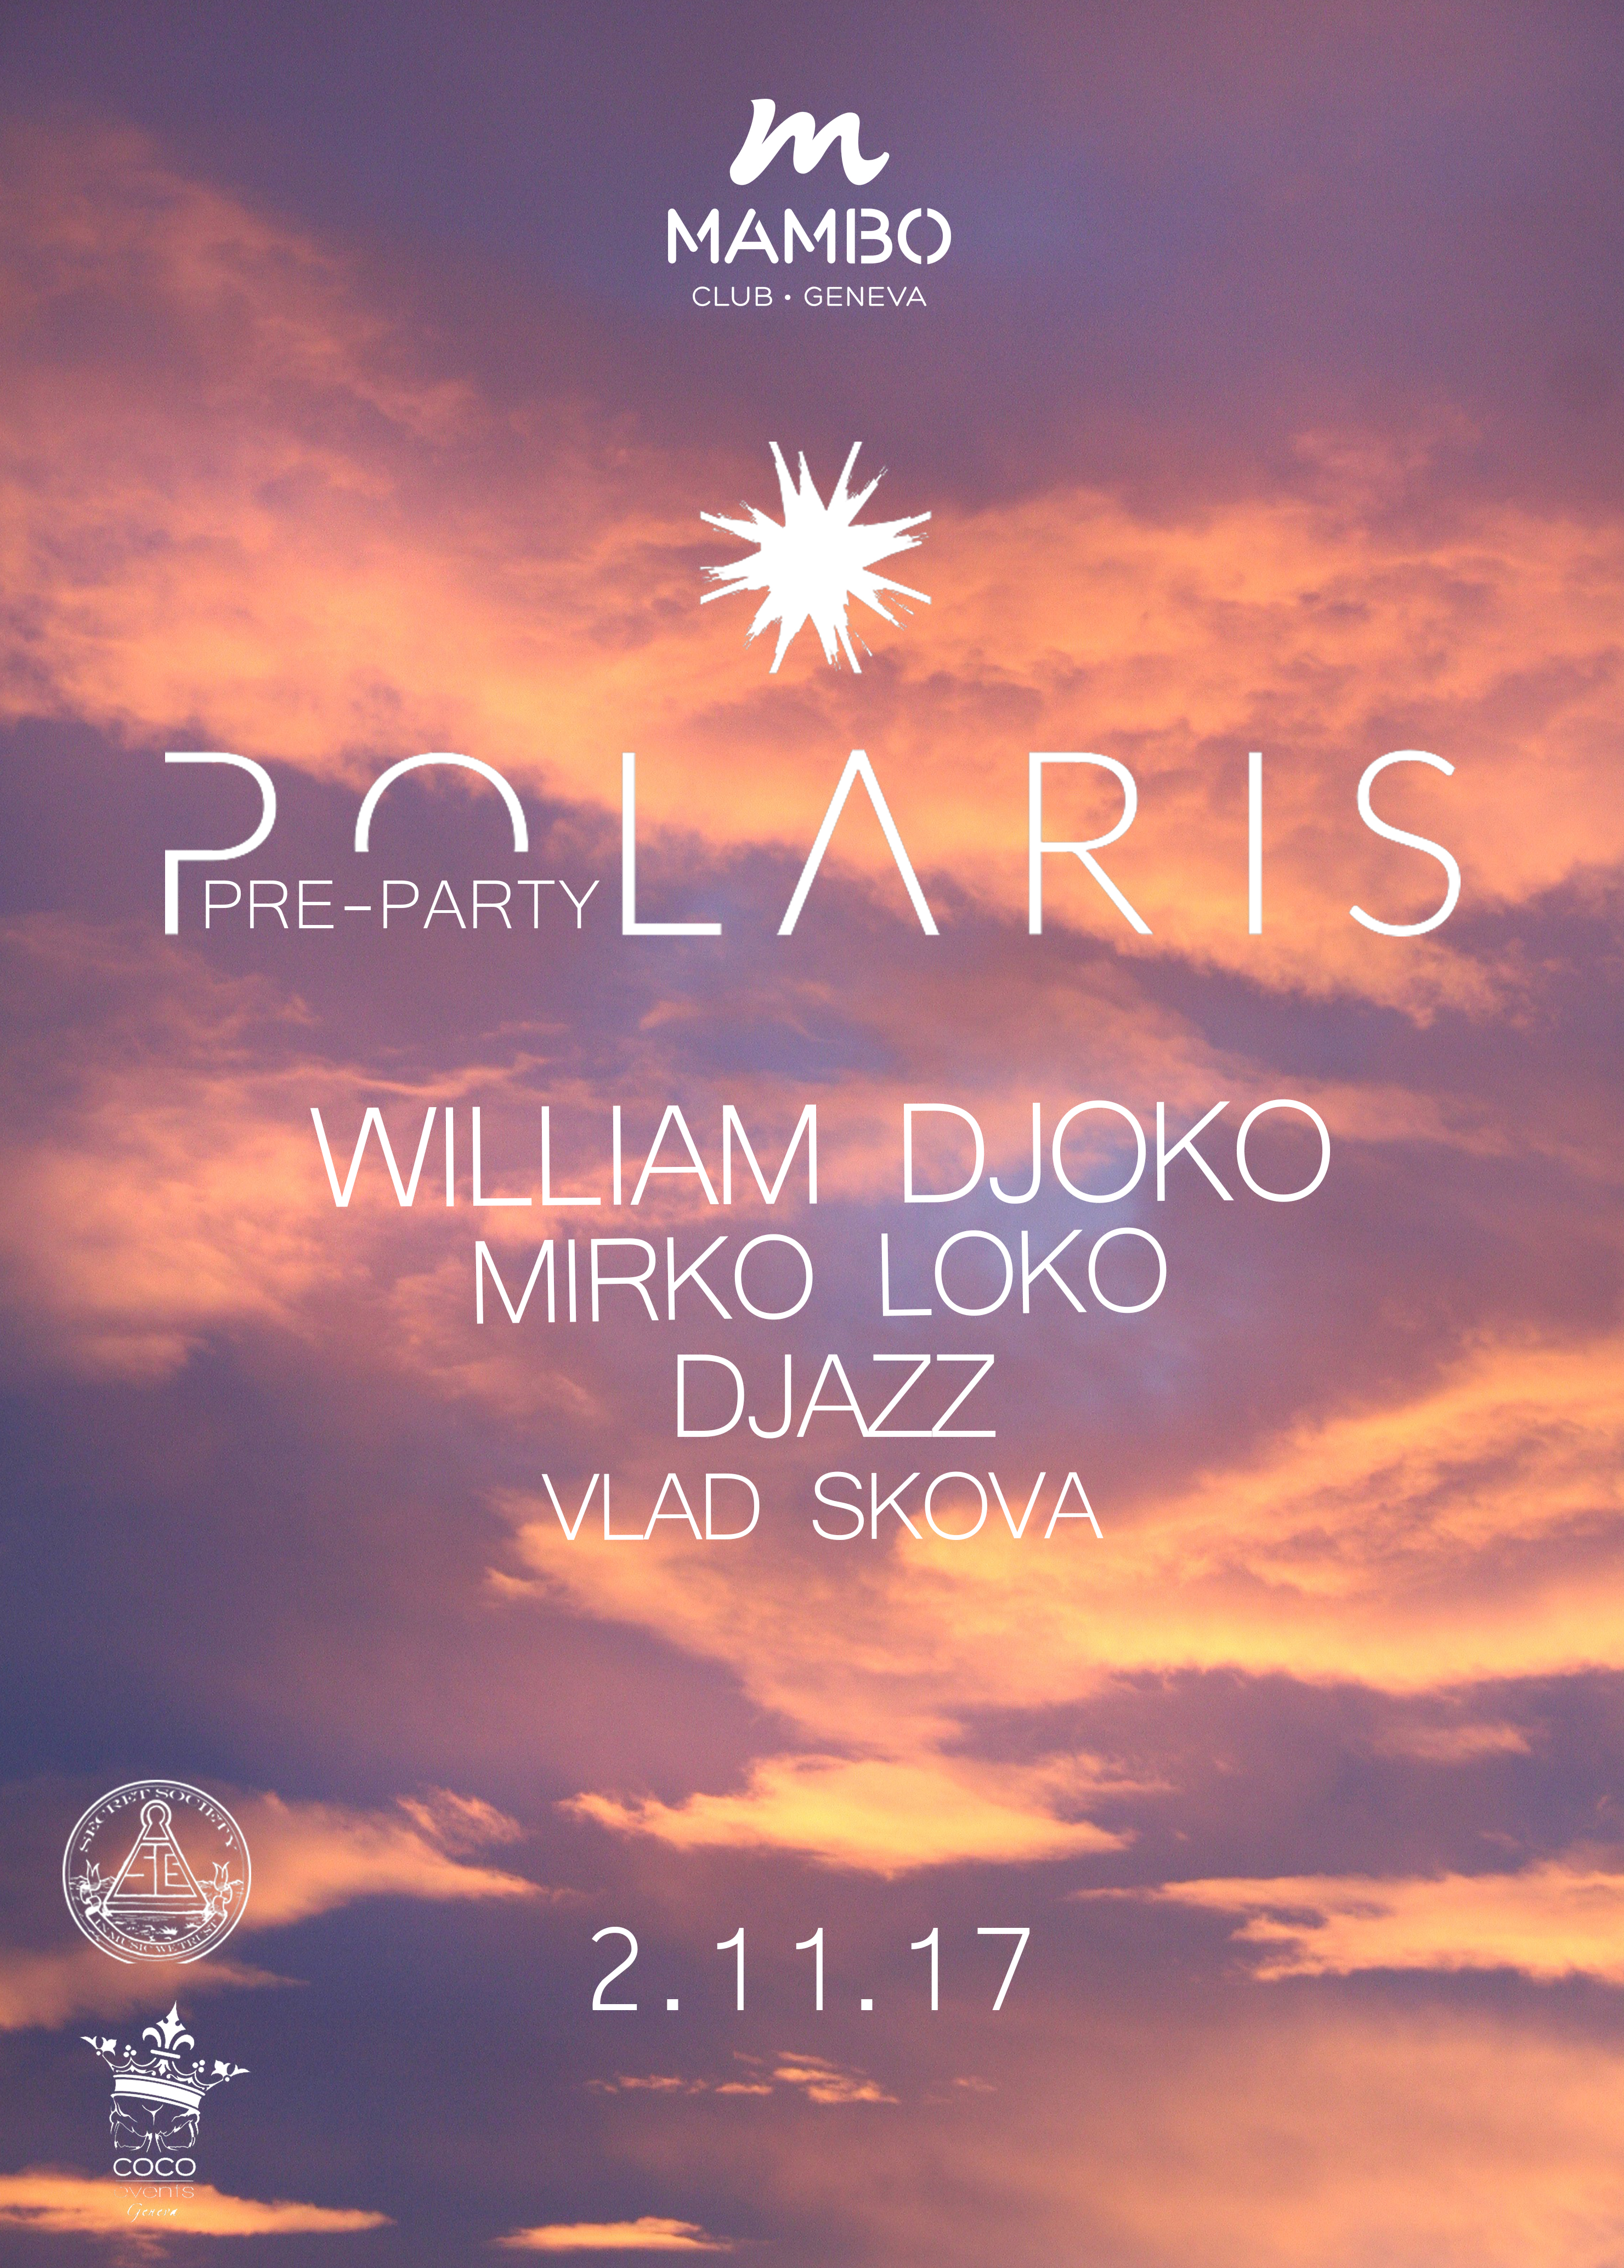 Polaris Pre-party w/ William Djoko - @Mambo